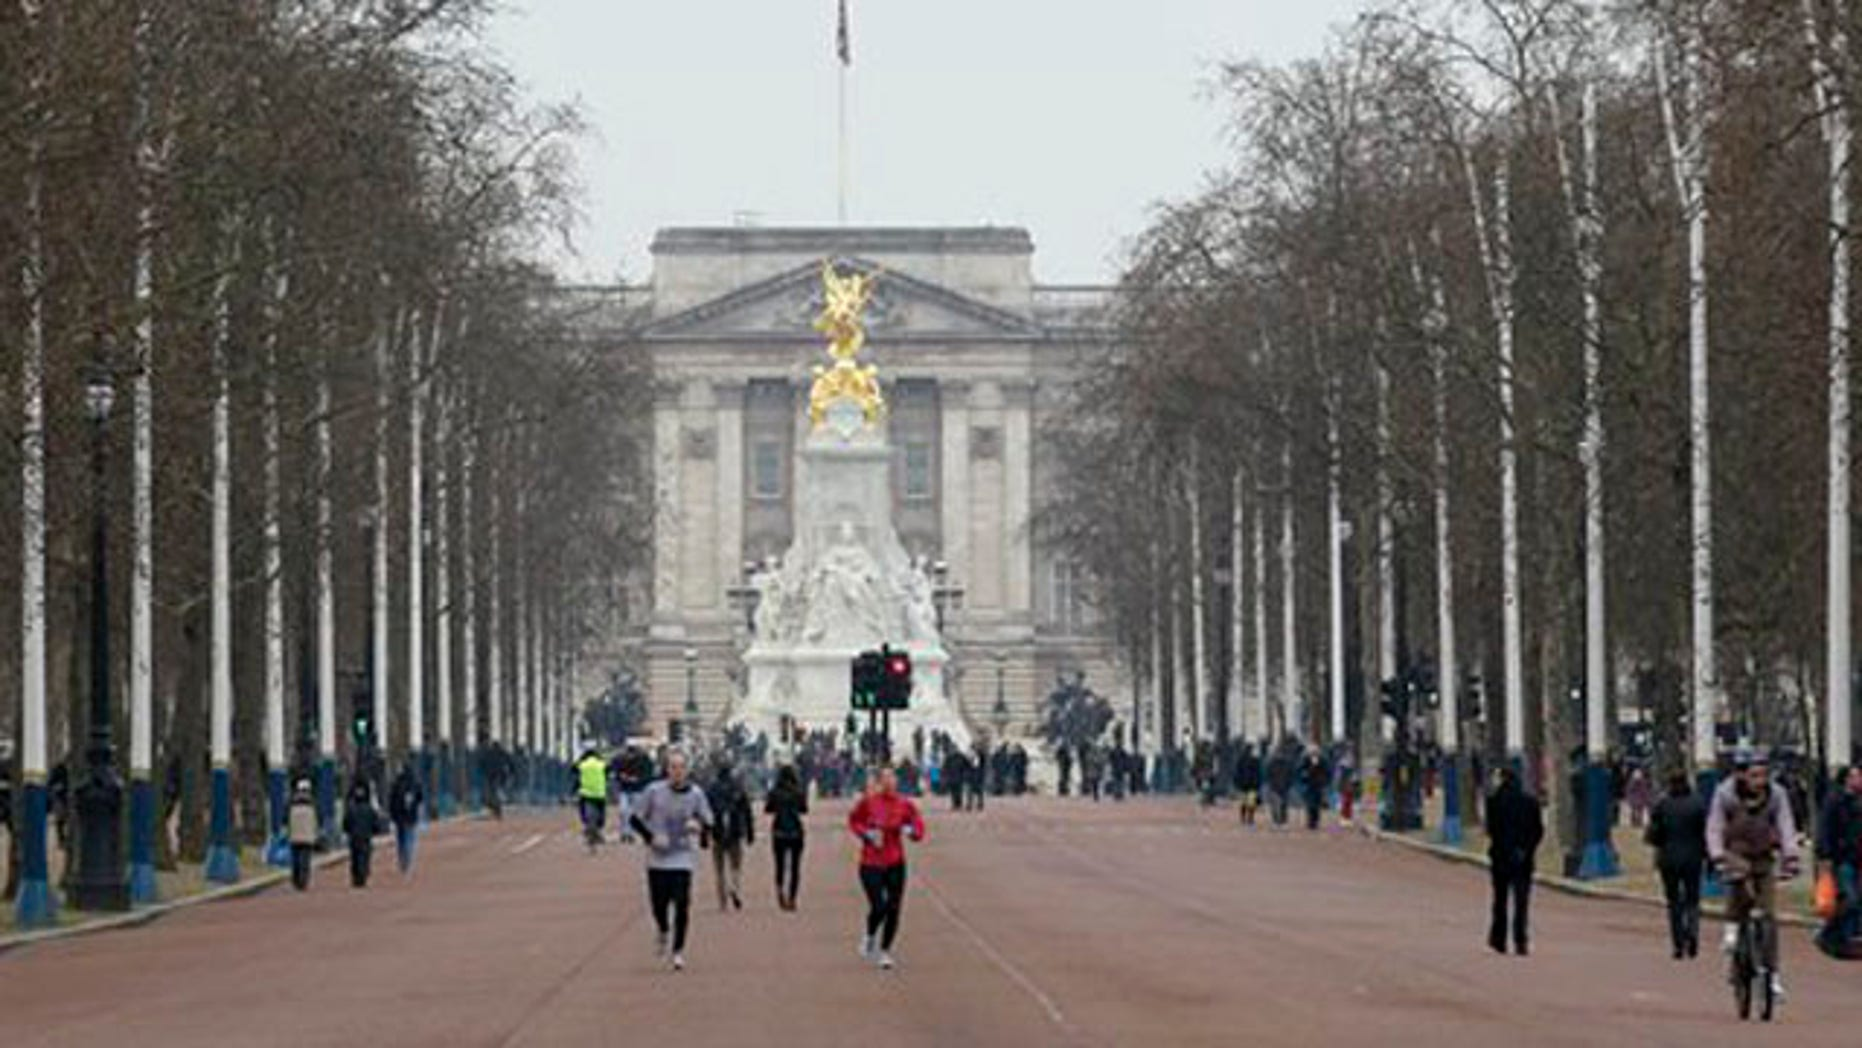 Jan. 29, 2012: People jog down the Mall from Buckingham Palace in London. The Mall will host the start and finish of London 2012 Olympic marathon, race walk and road cycling competitions with most sections of the courses free to watch.